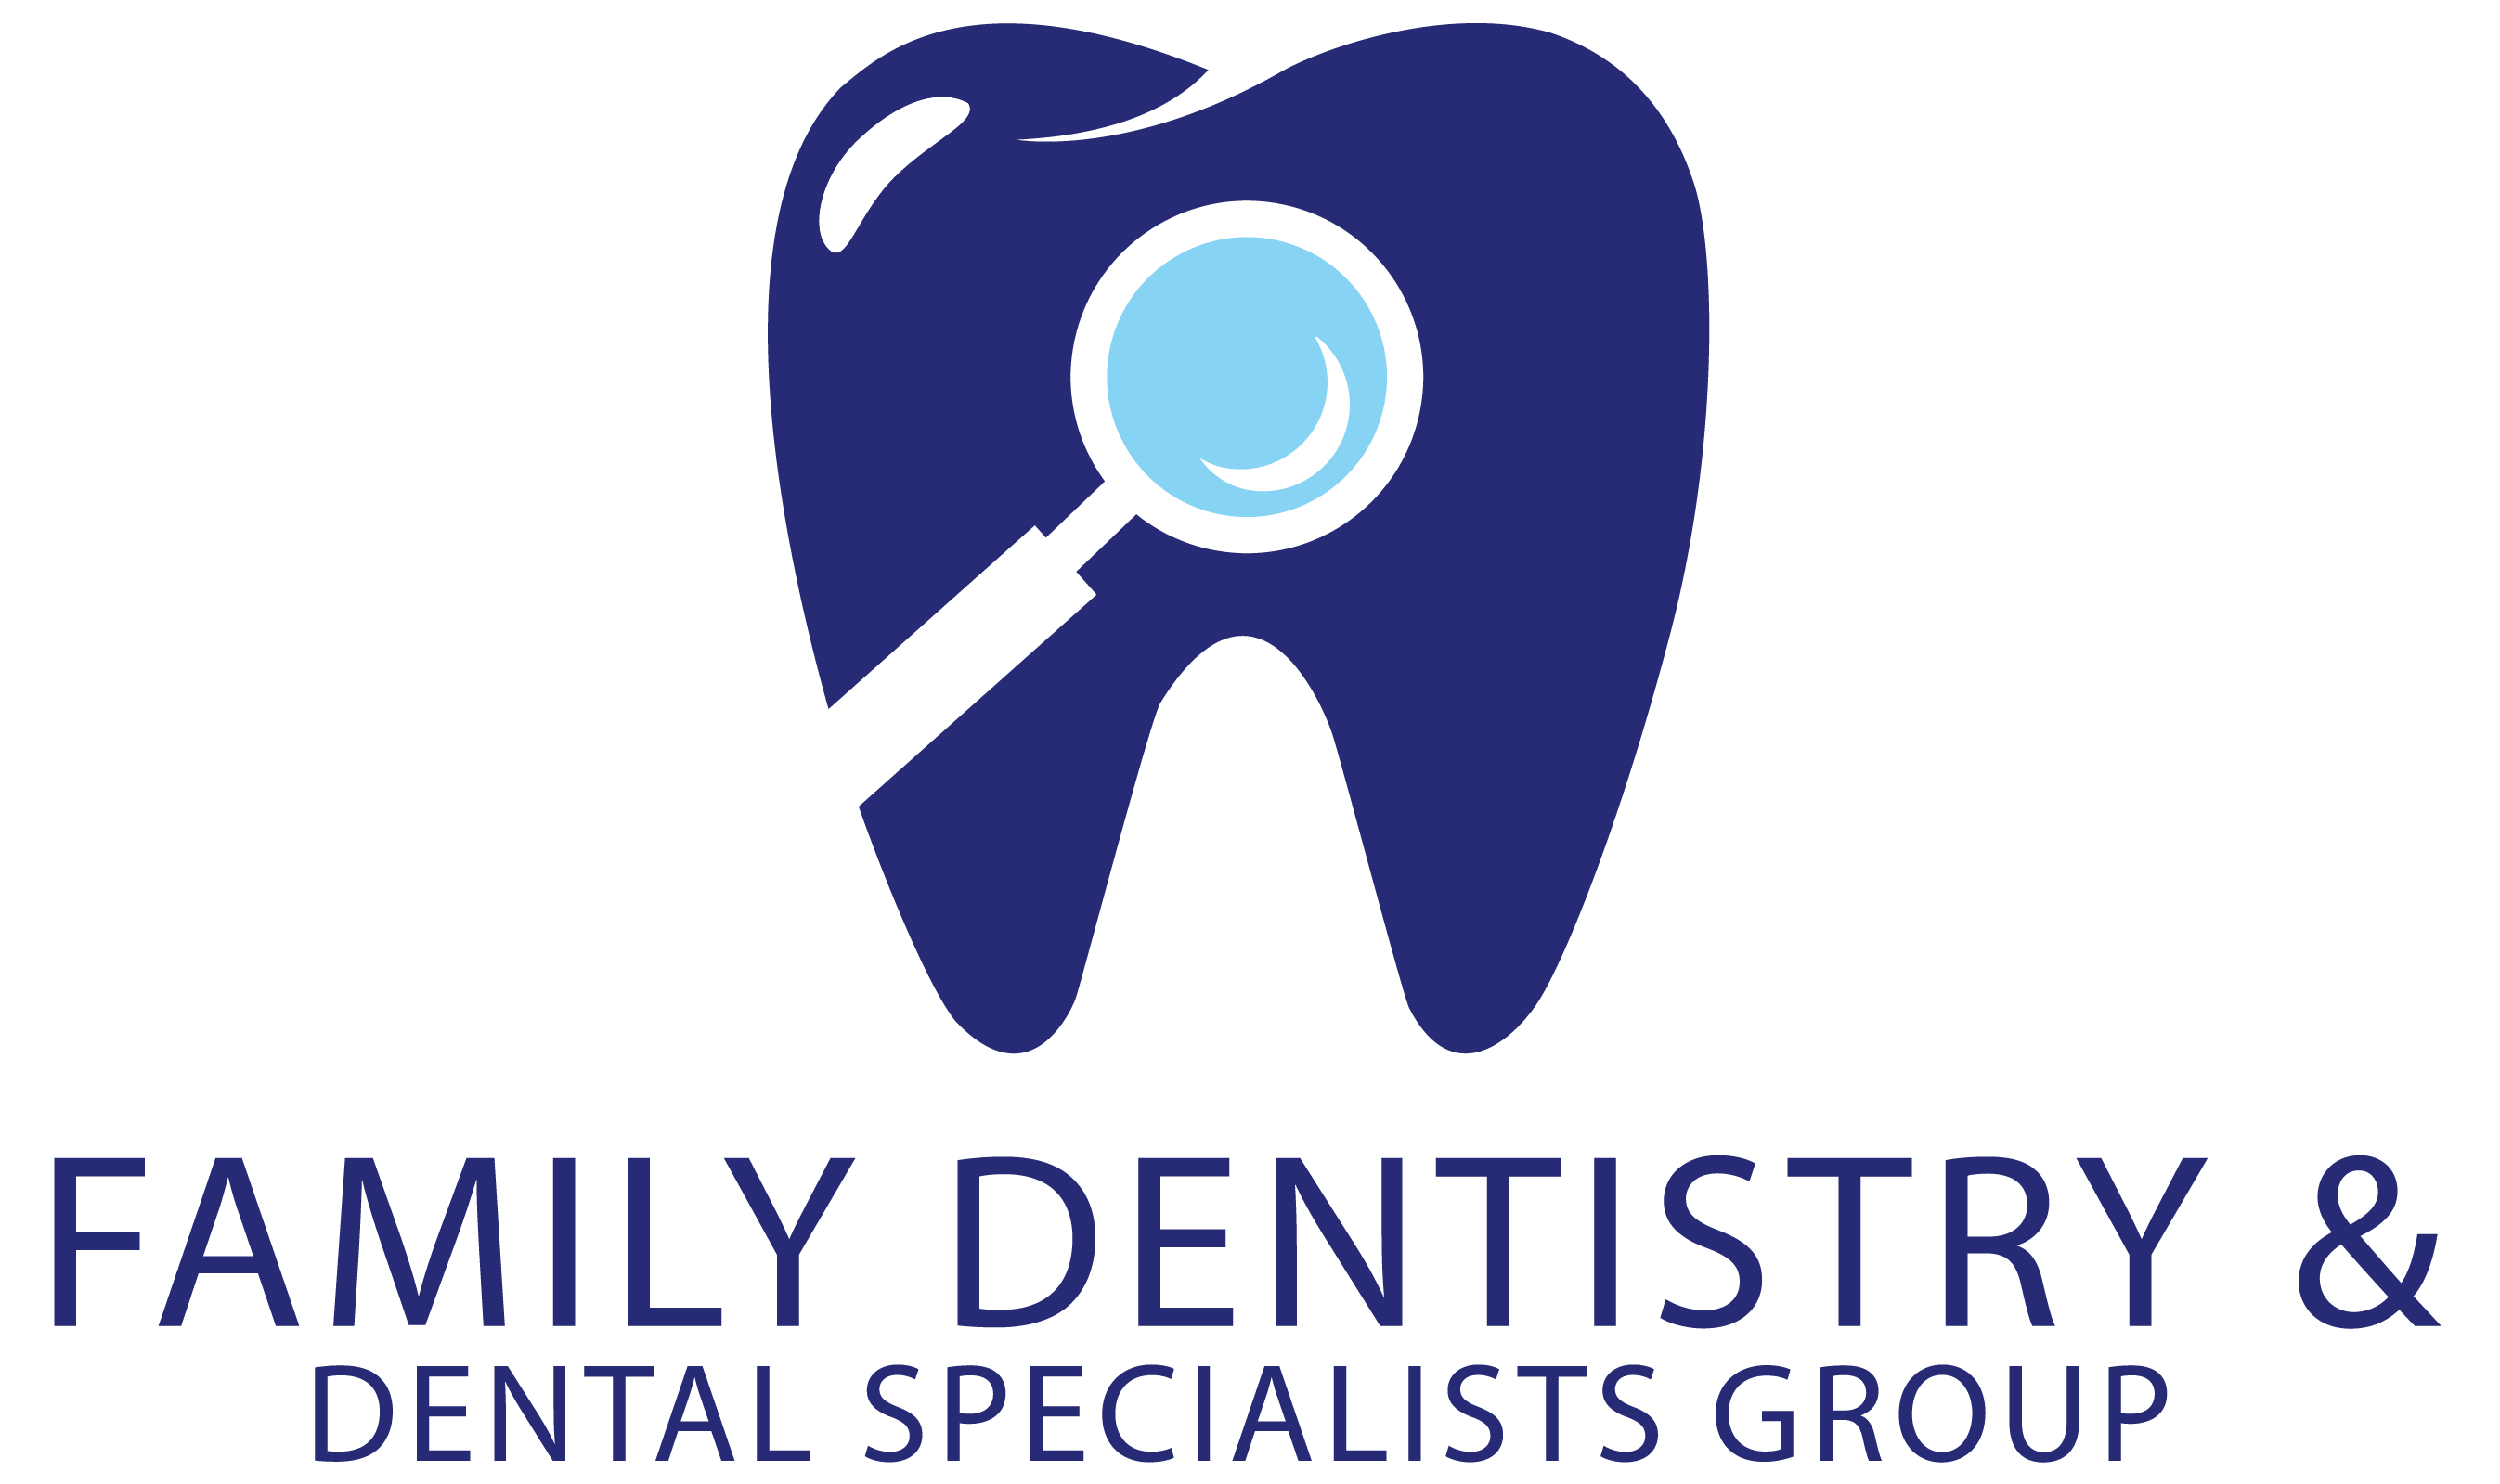 Family Dentistry and Dental Specialists Group - Yaad Links